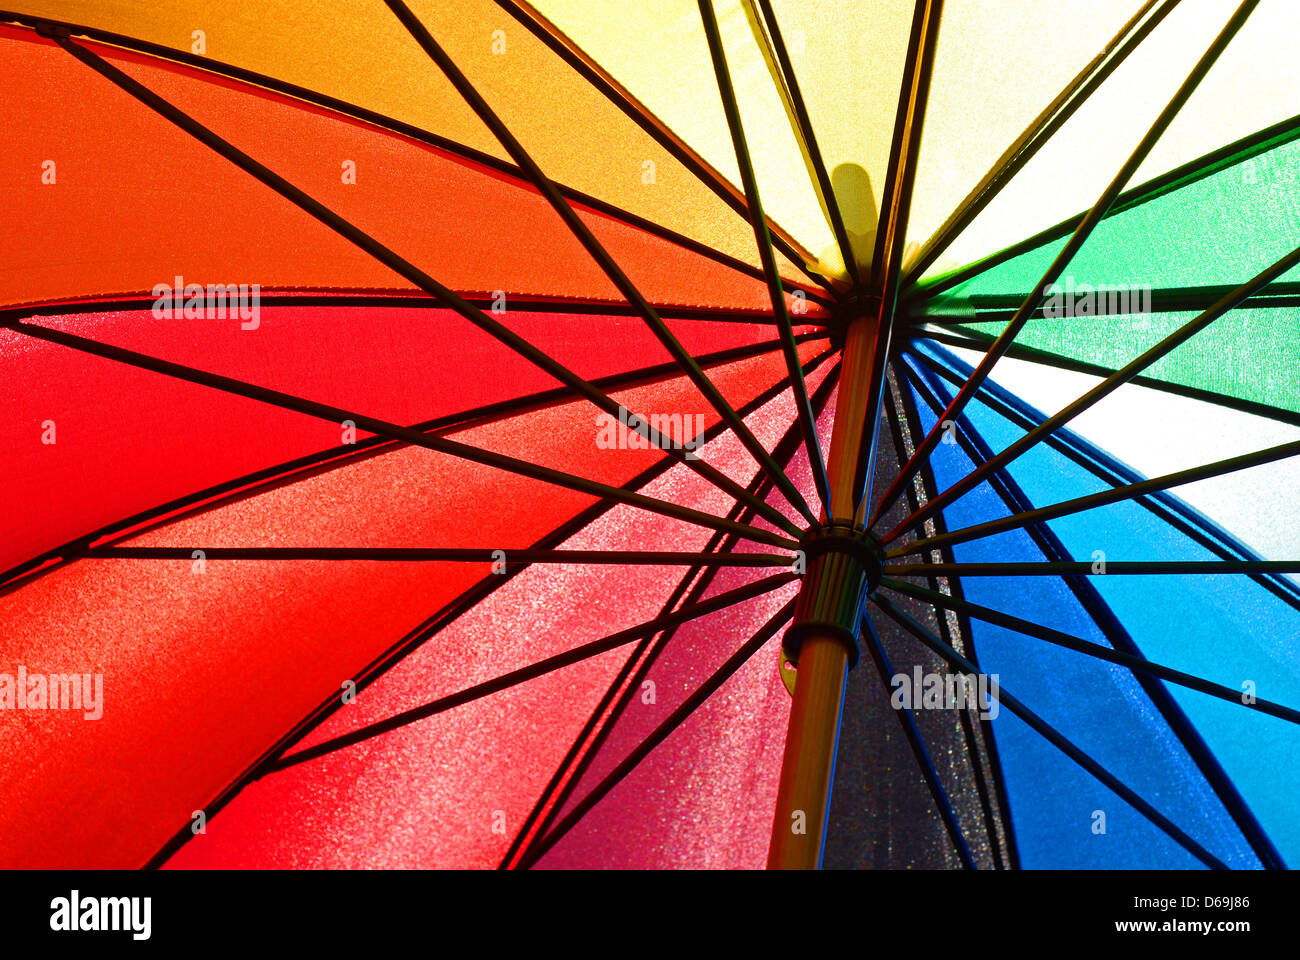 umbrella,umbrella Stock Photo